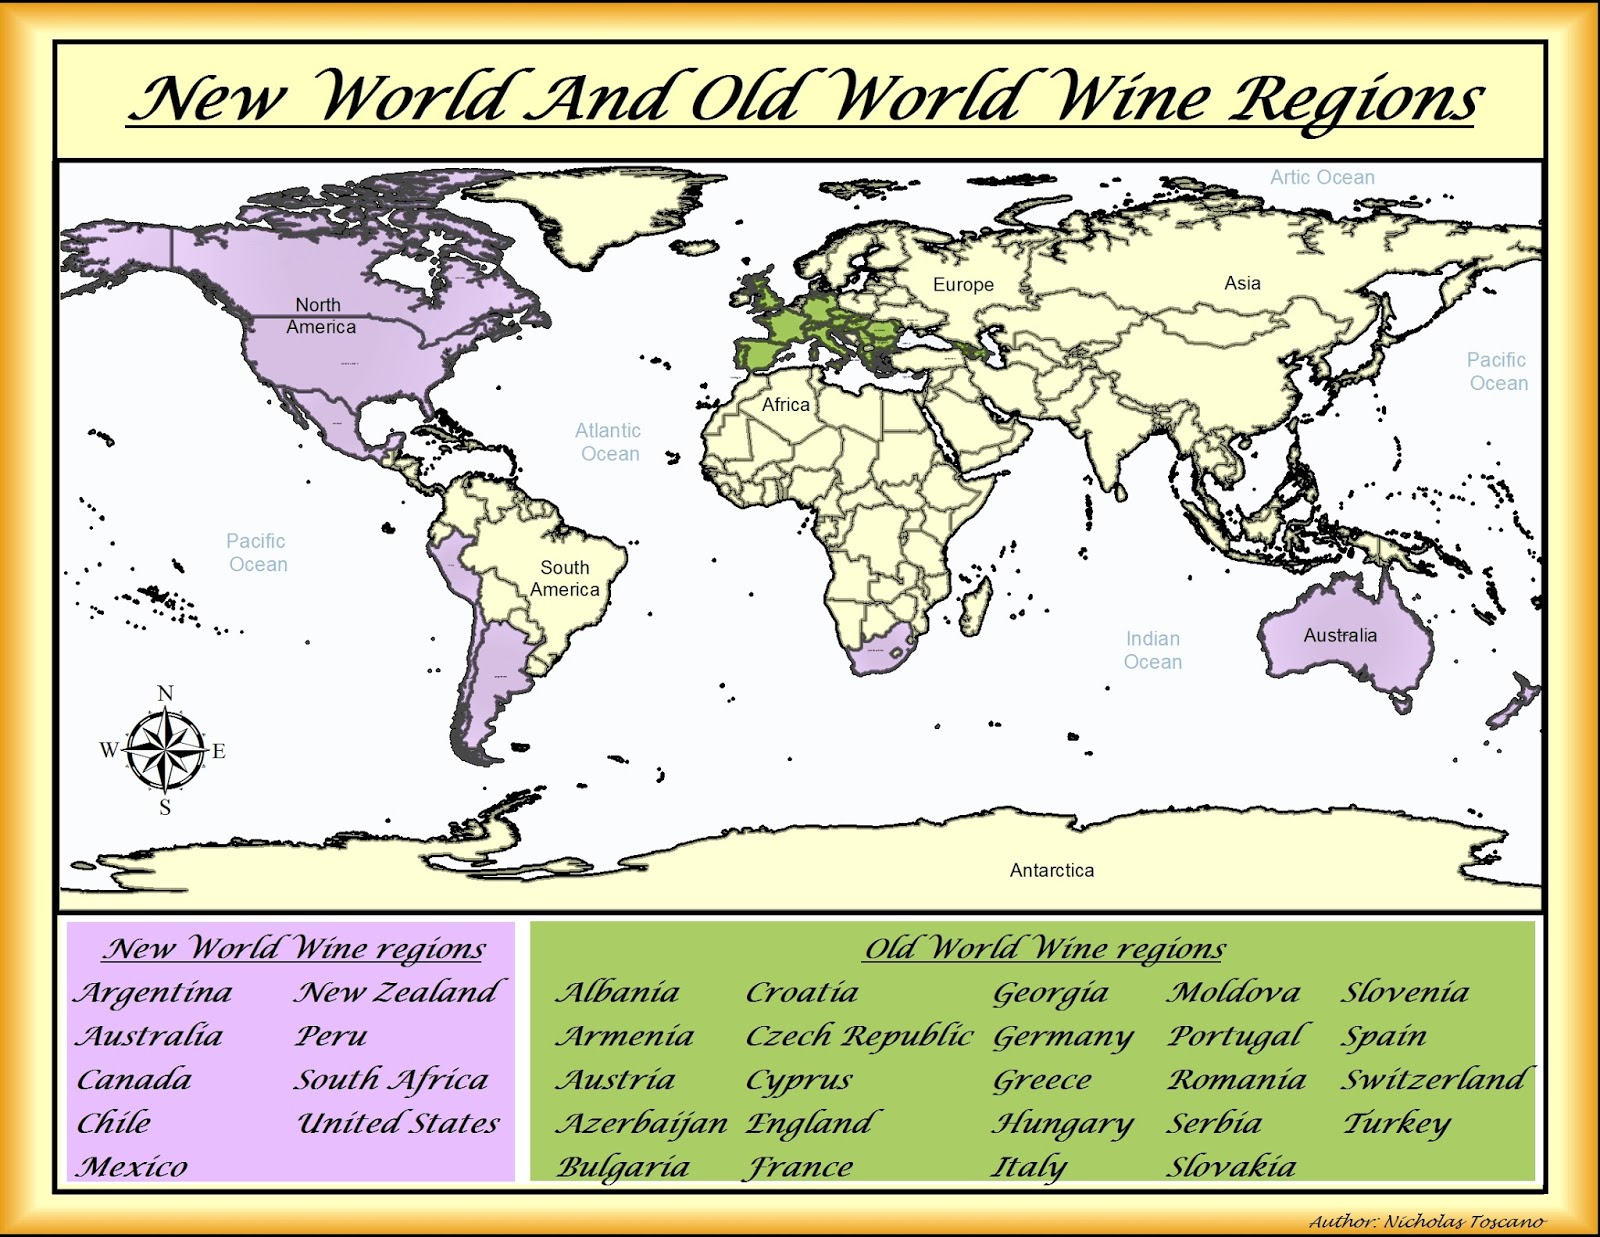 My wine journal a map of new and old world wine regions a map of new and old world wine regions gumiabroncs Gallery